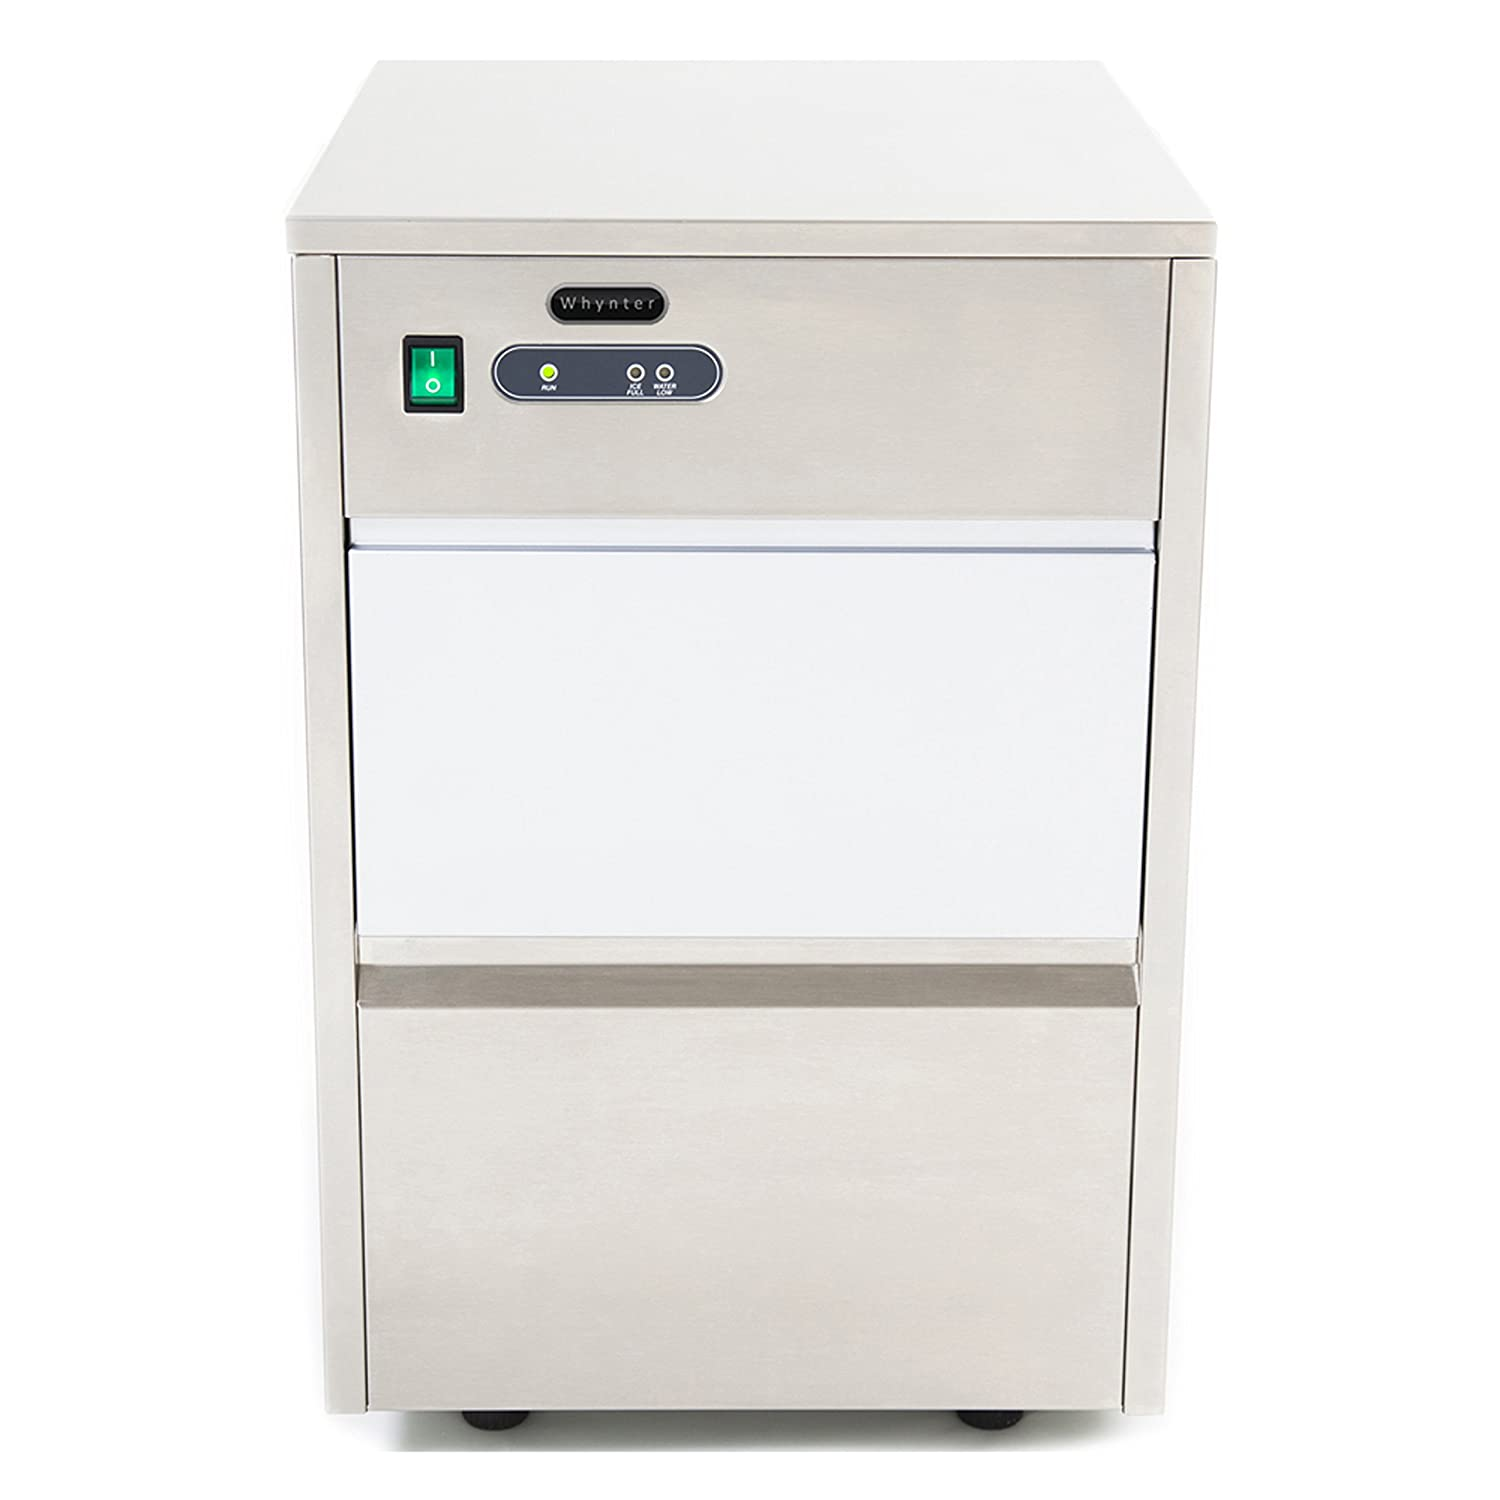 Whynter FIM-450HA Freestanding Ice Maker, Stainless Steel